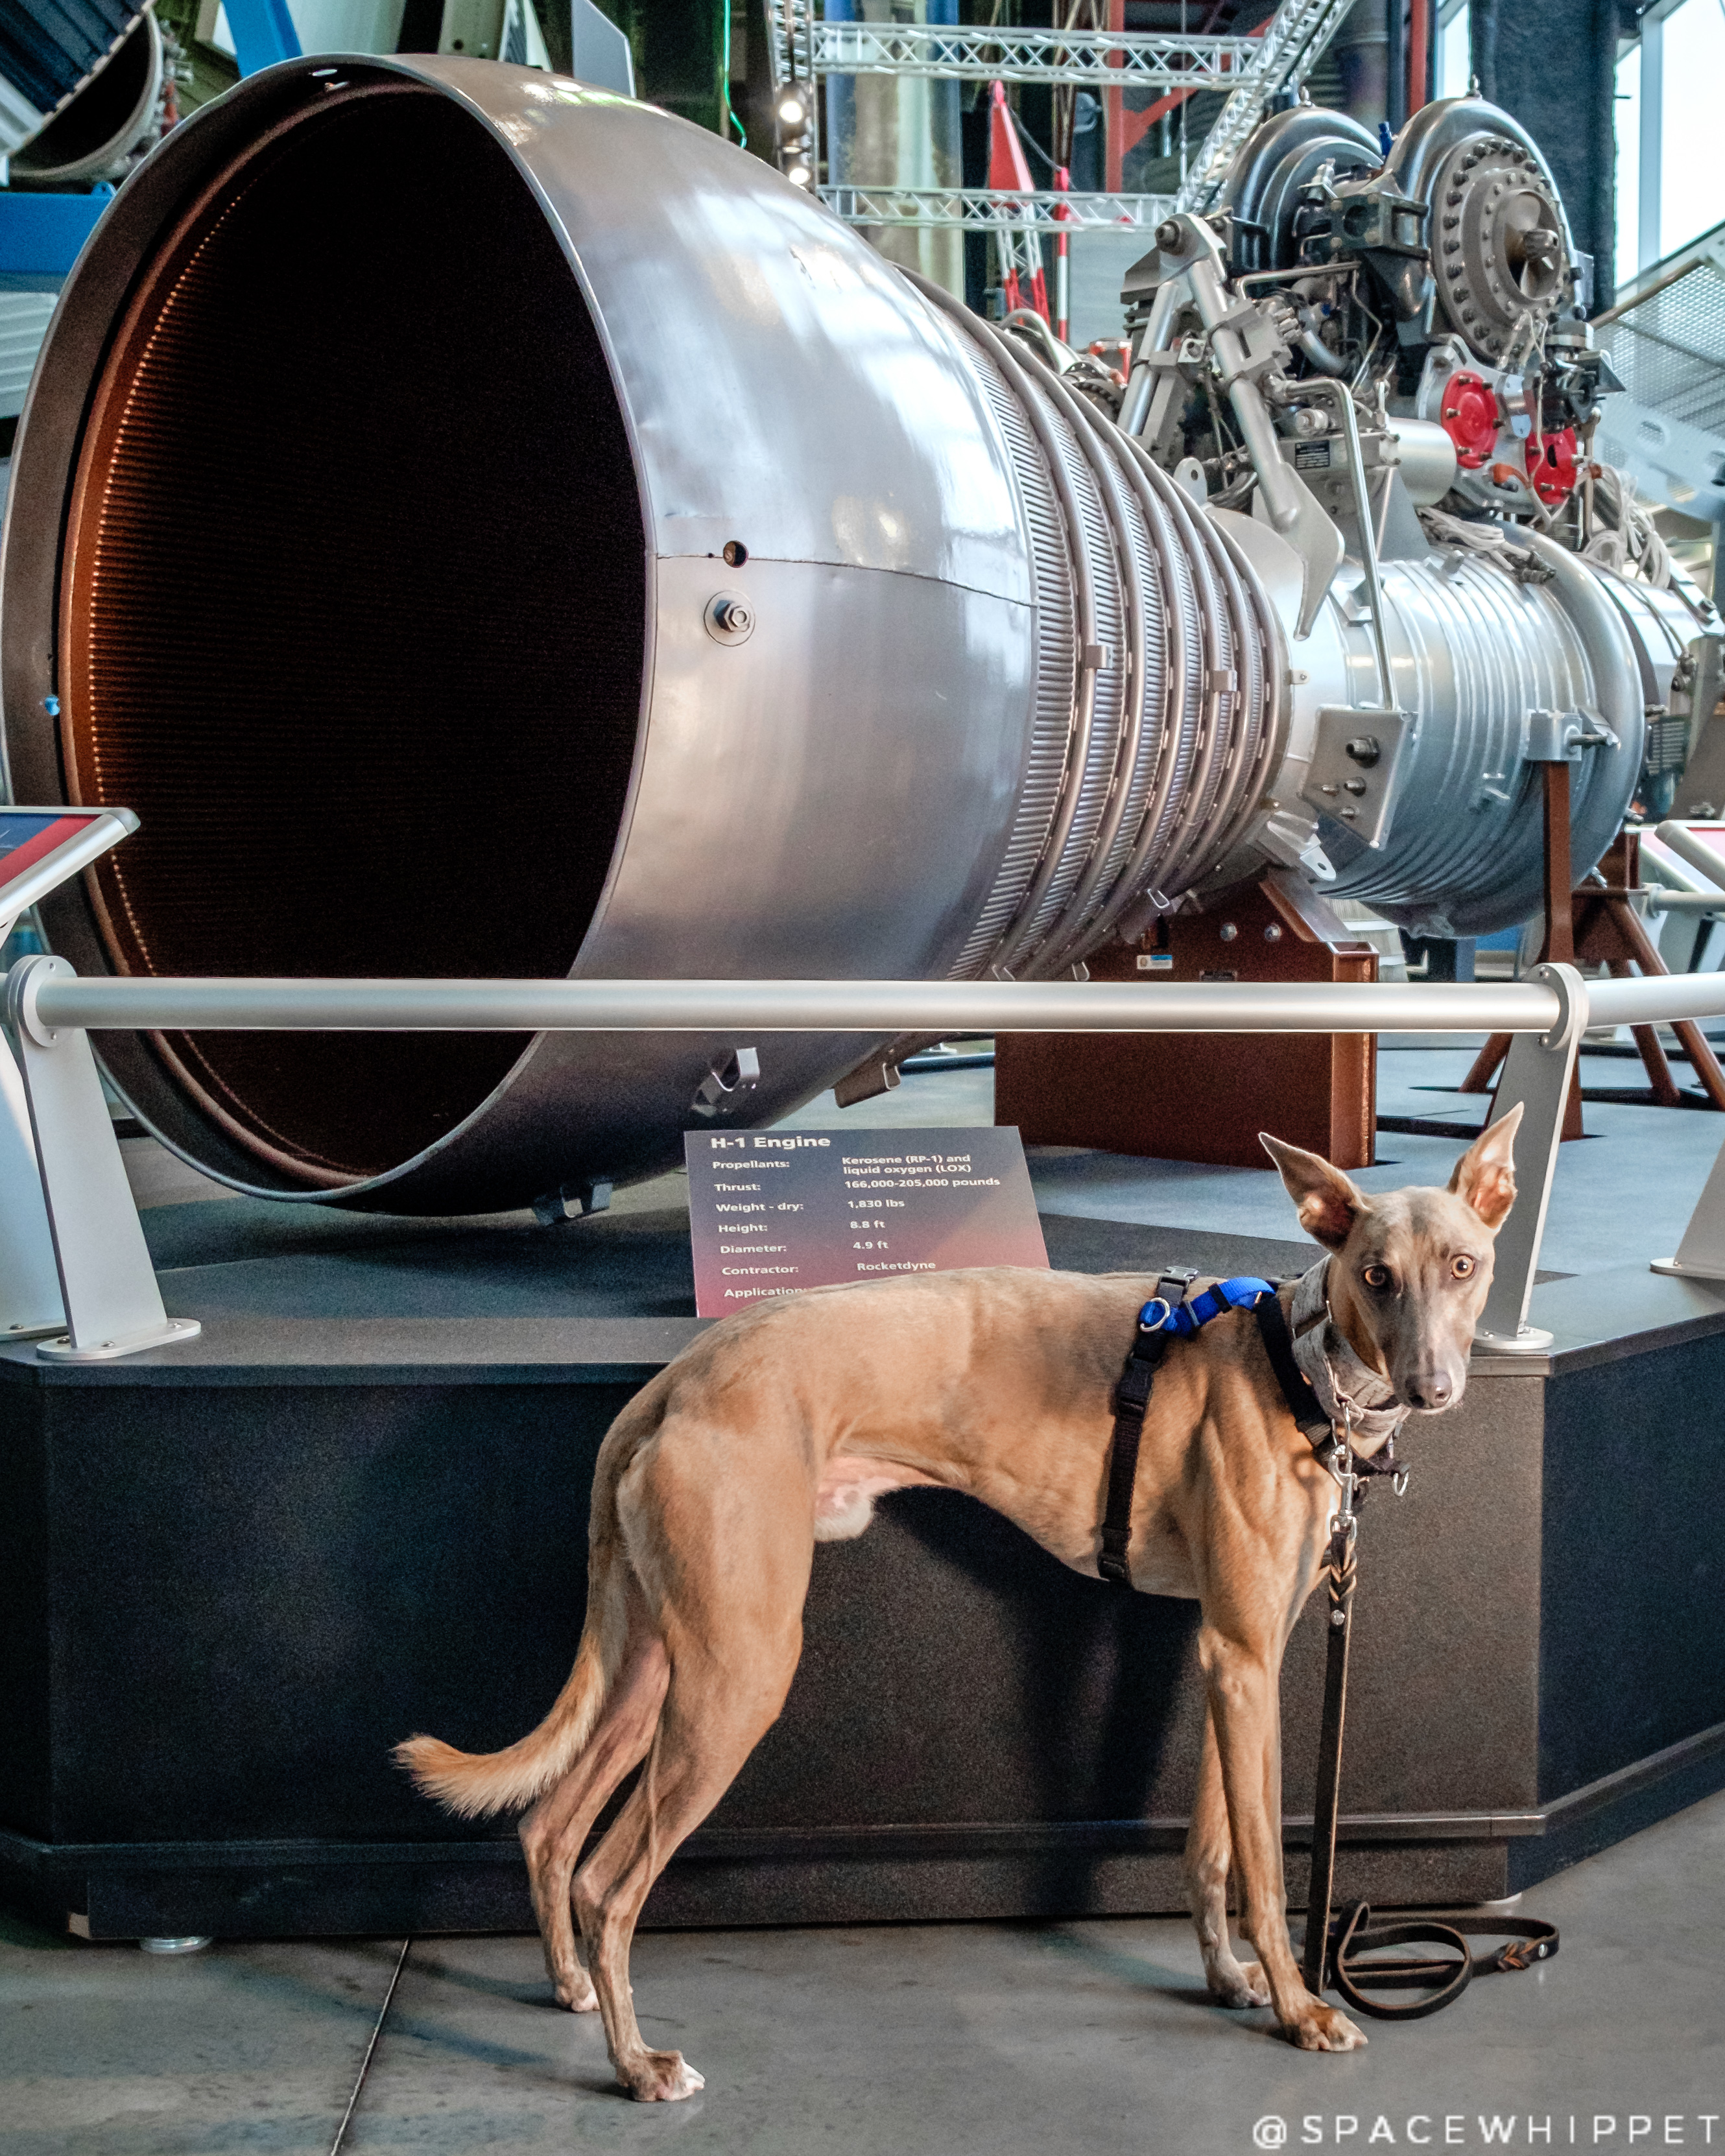 Kuiper poses with a Rocketdyne H-1 rocket engine at US Space and Rocket center